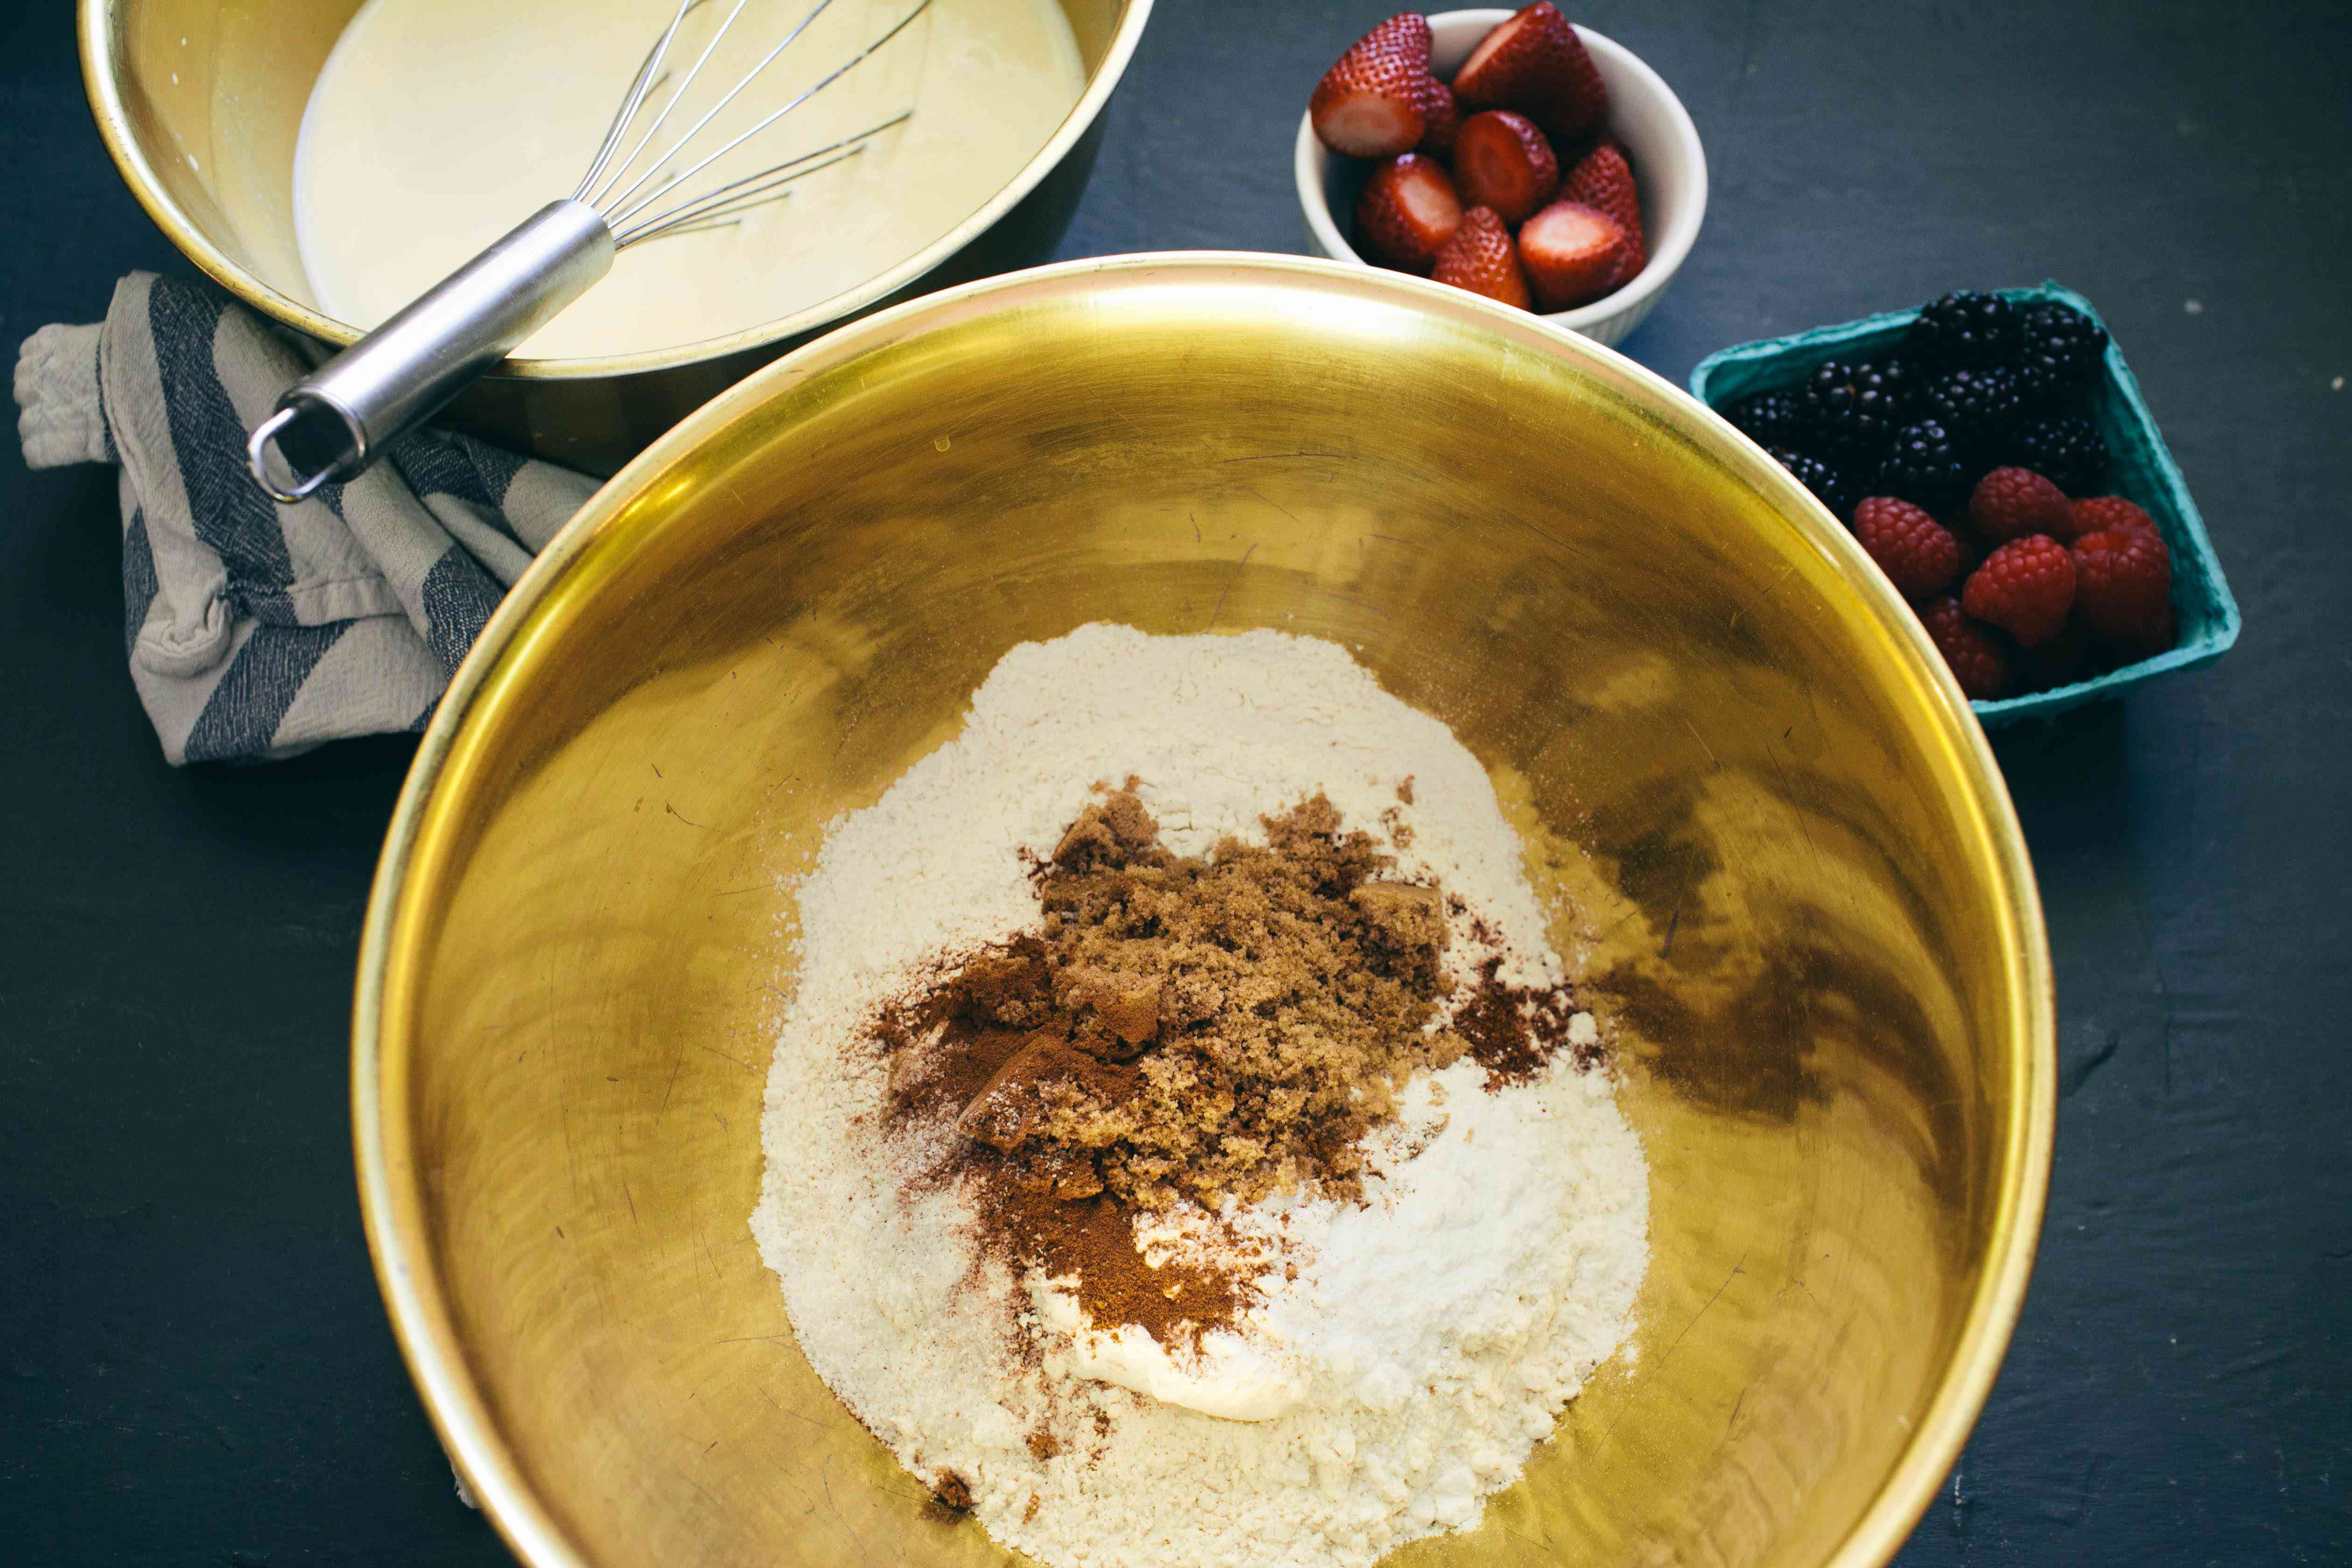 Mix dry ingredients together